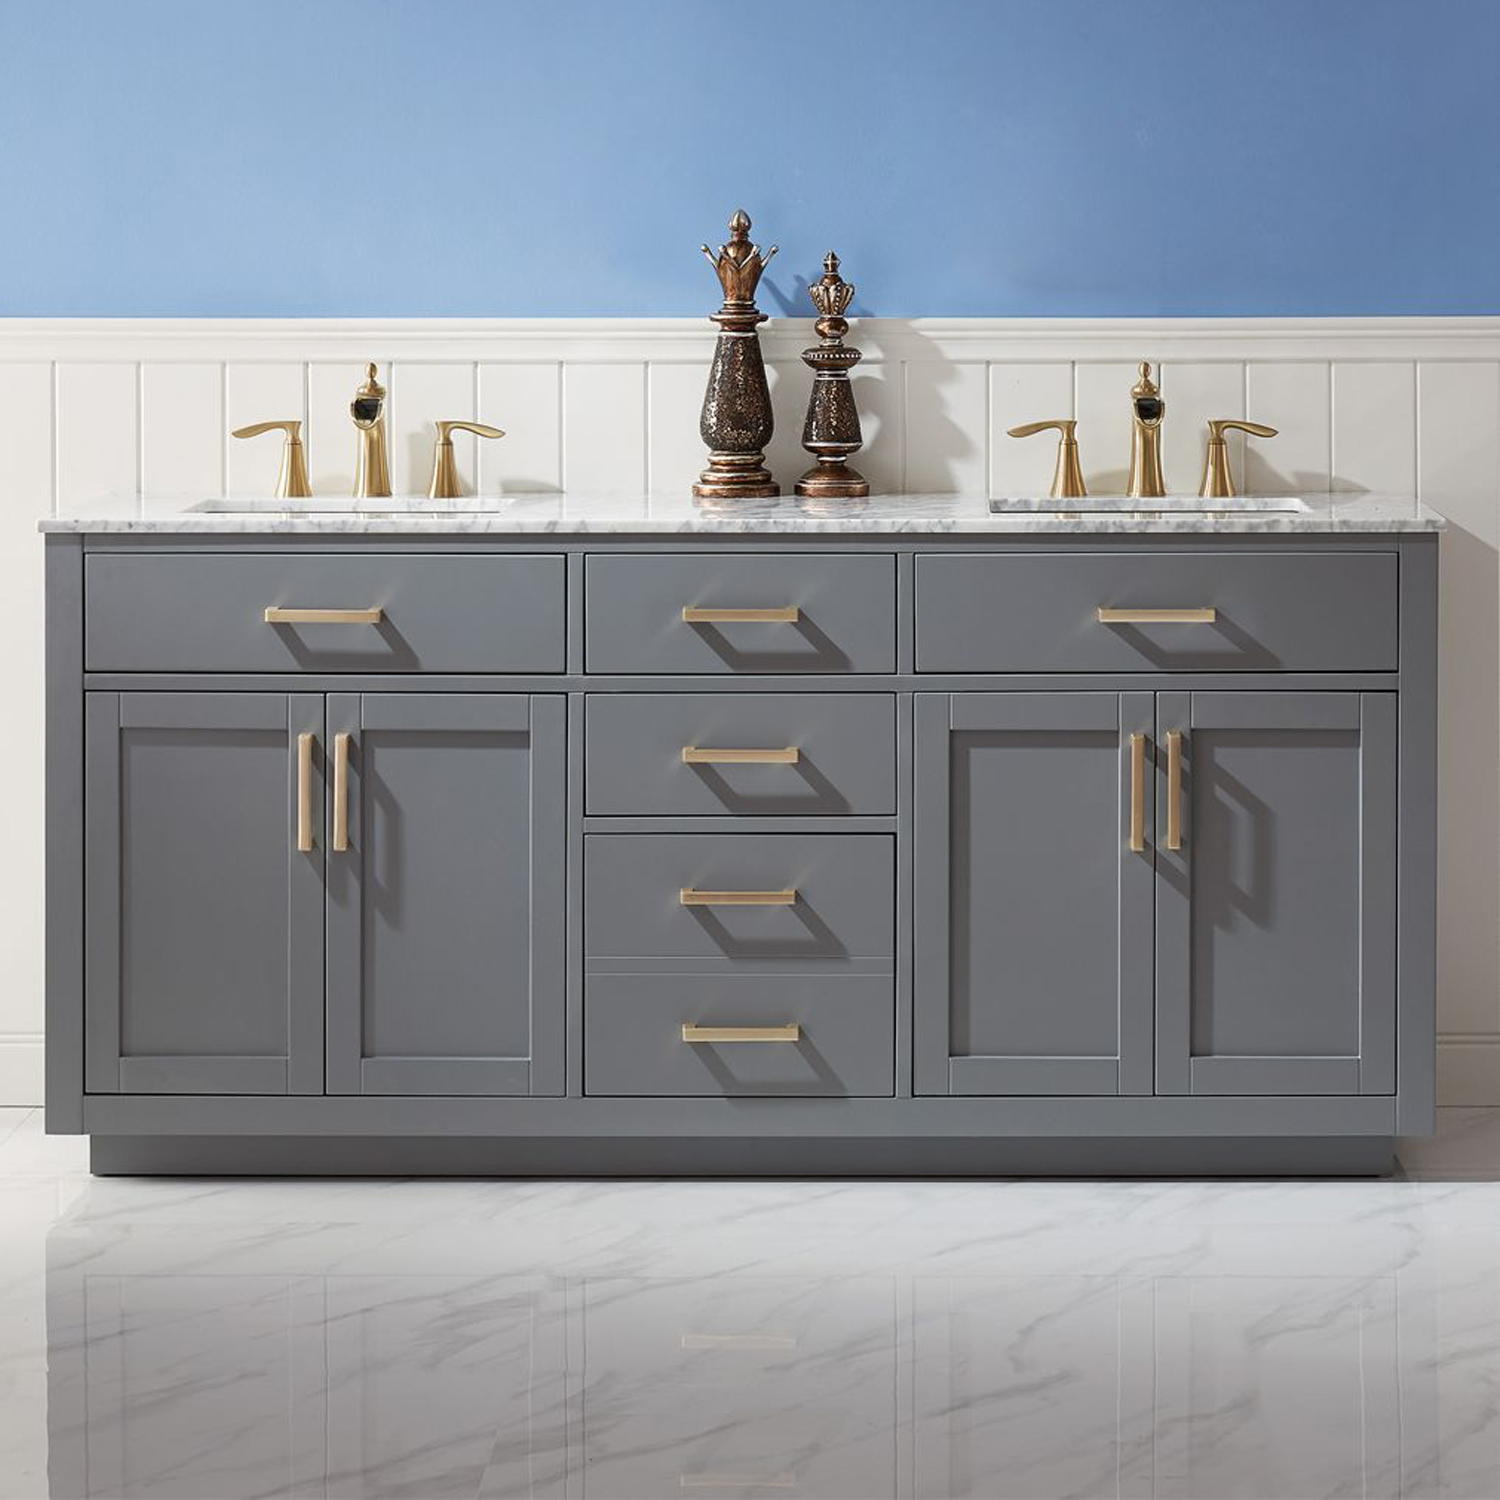 "Issac Edwards Collection 72"" Double Bathroom Vanity Set in Gray and Carrara White Marble Countertop without Mirror"